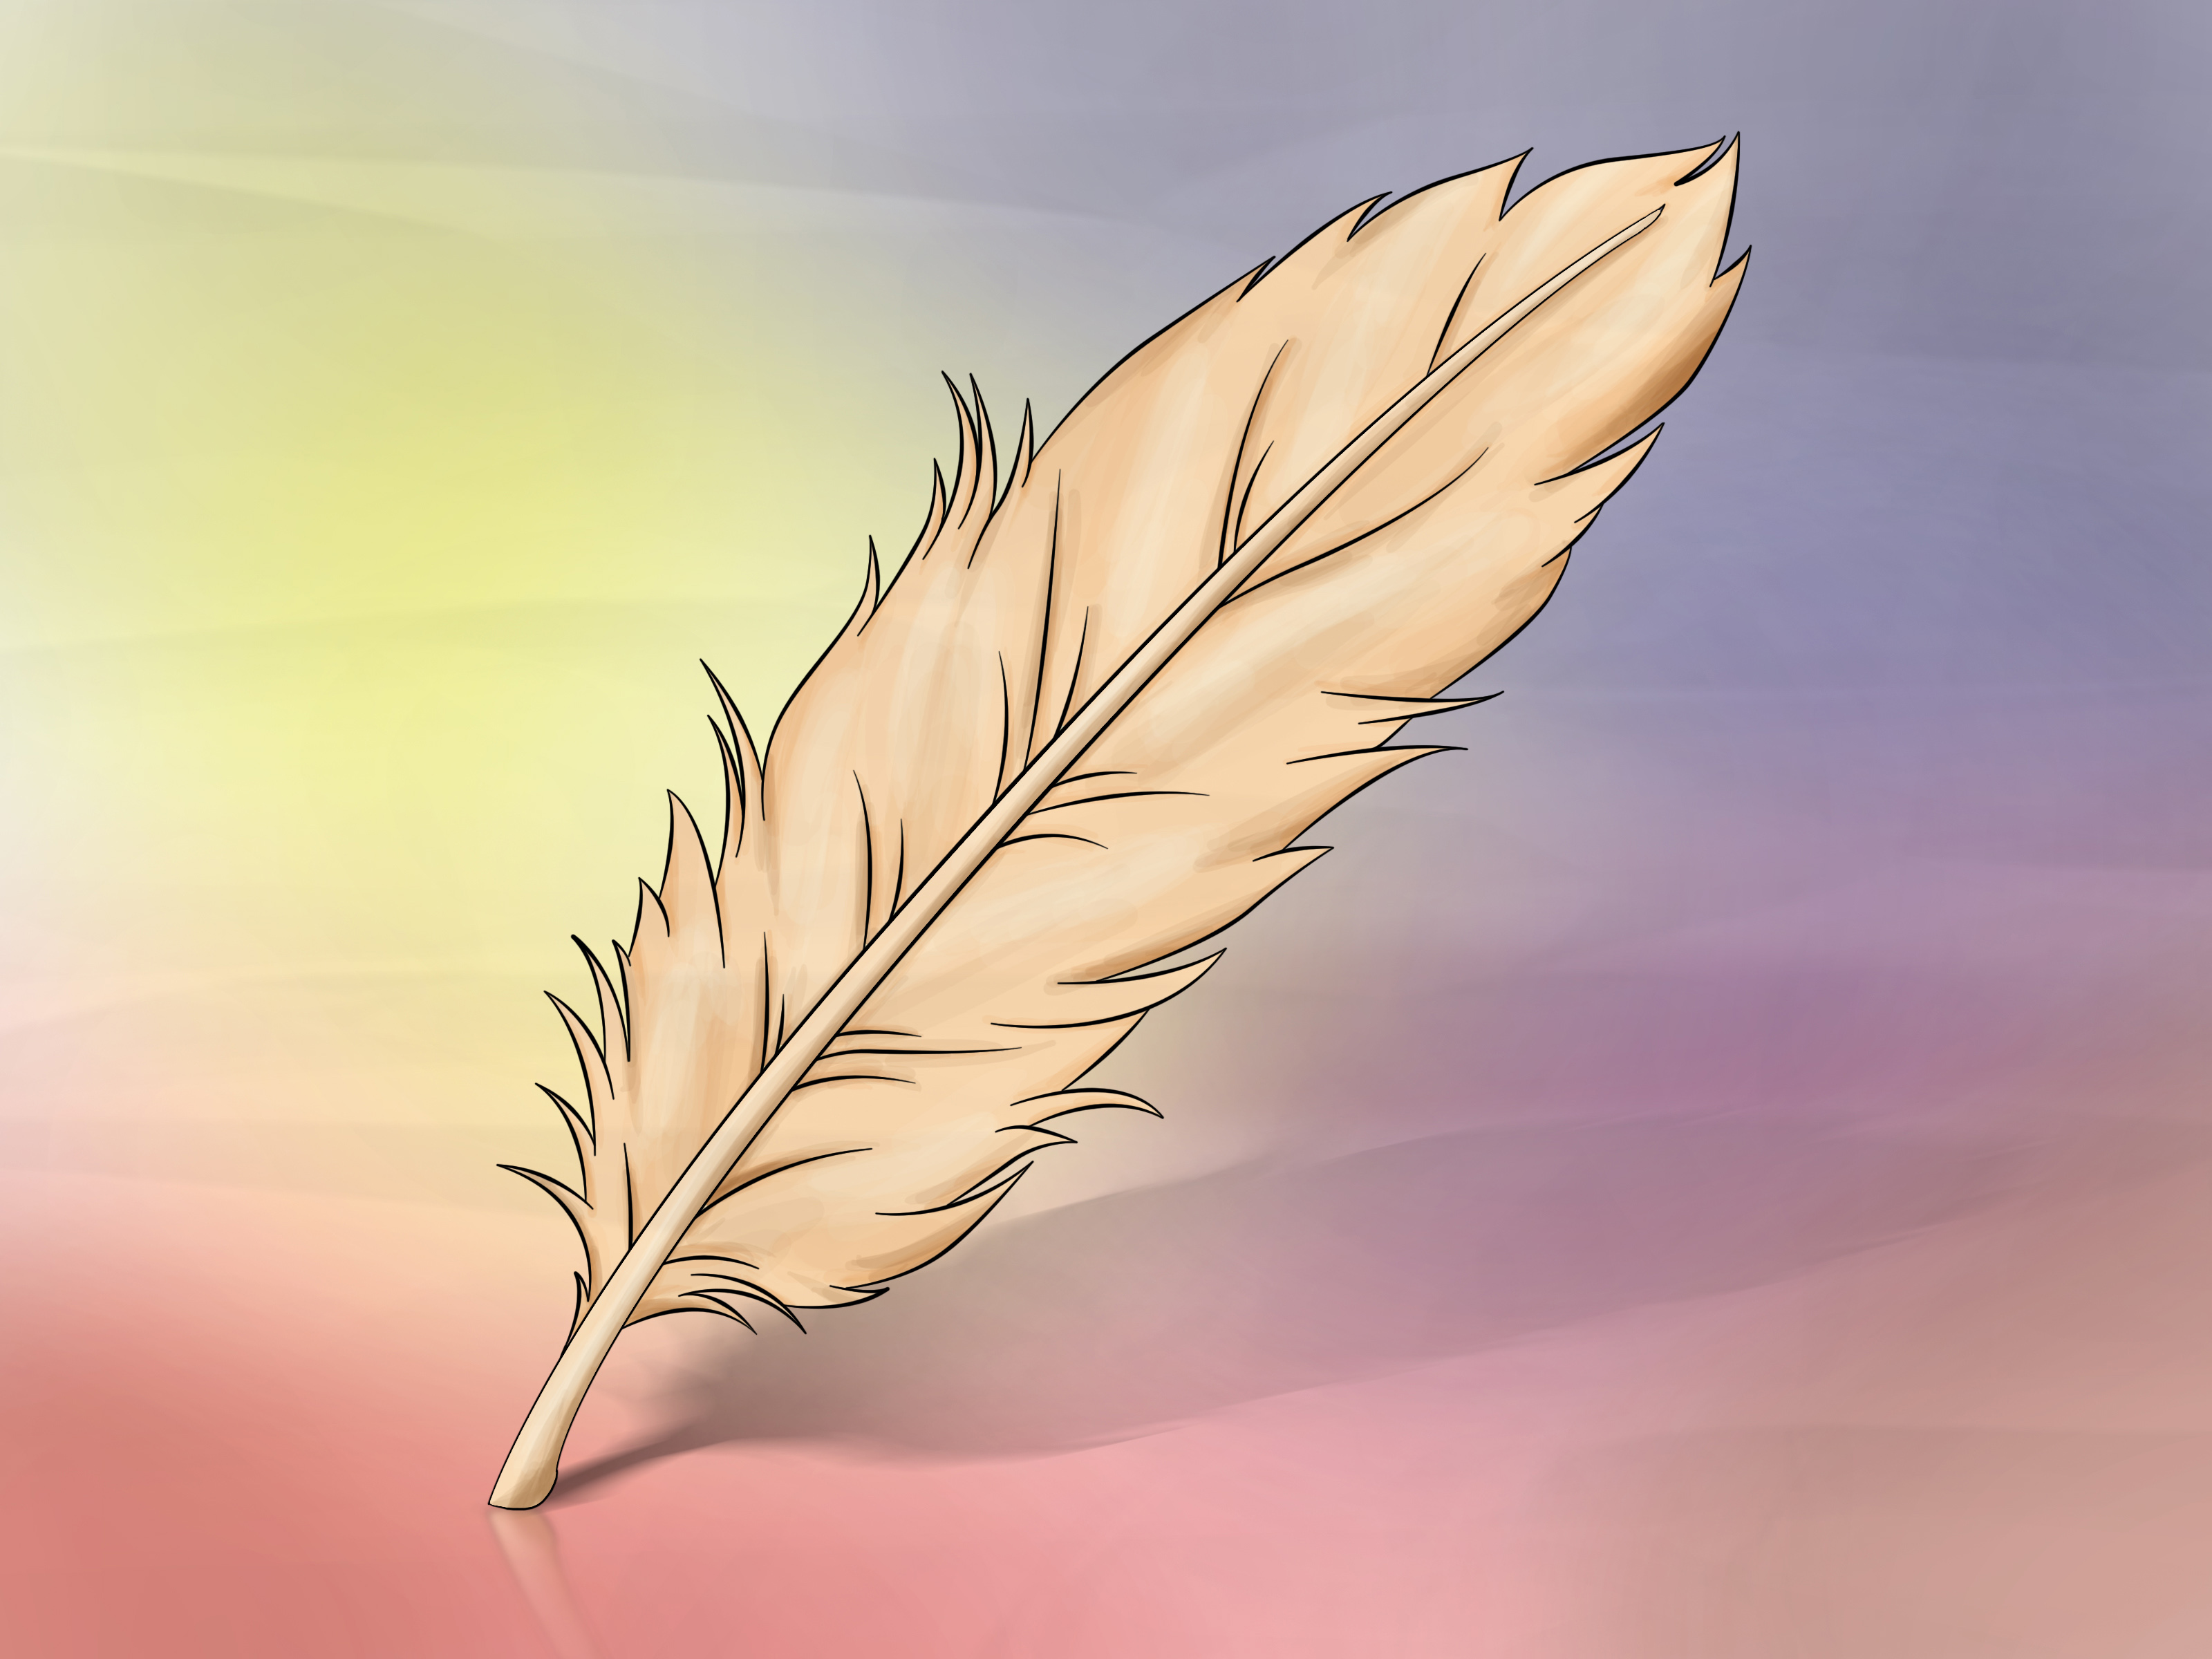 Drawn feather  Steps a Pictures) (with